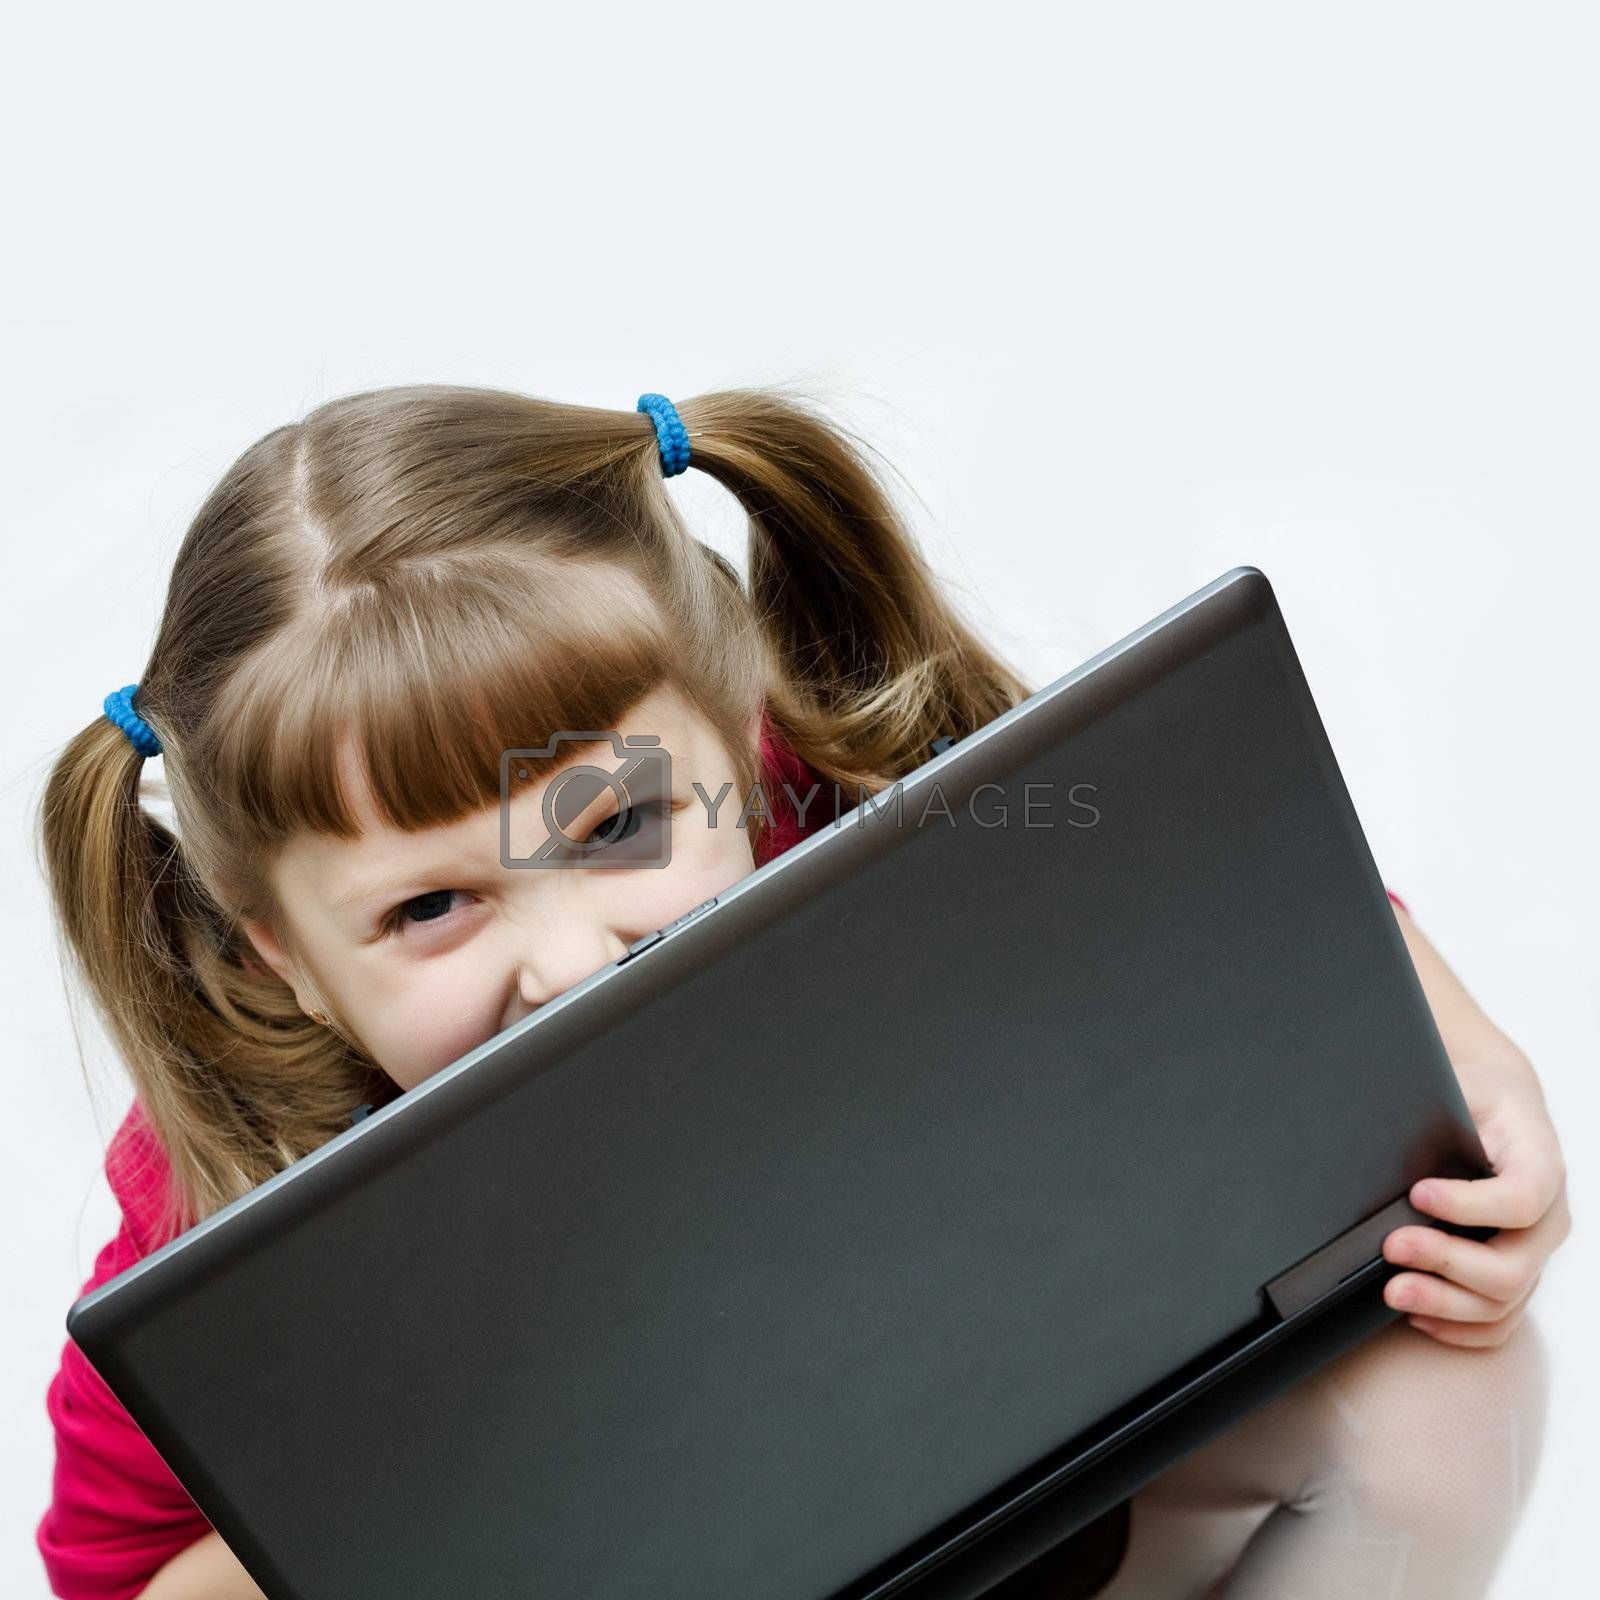 Stock photo: an image of a nice girl with laptop